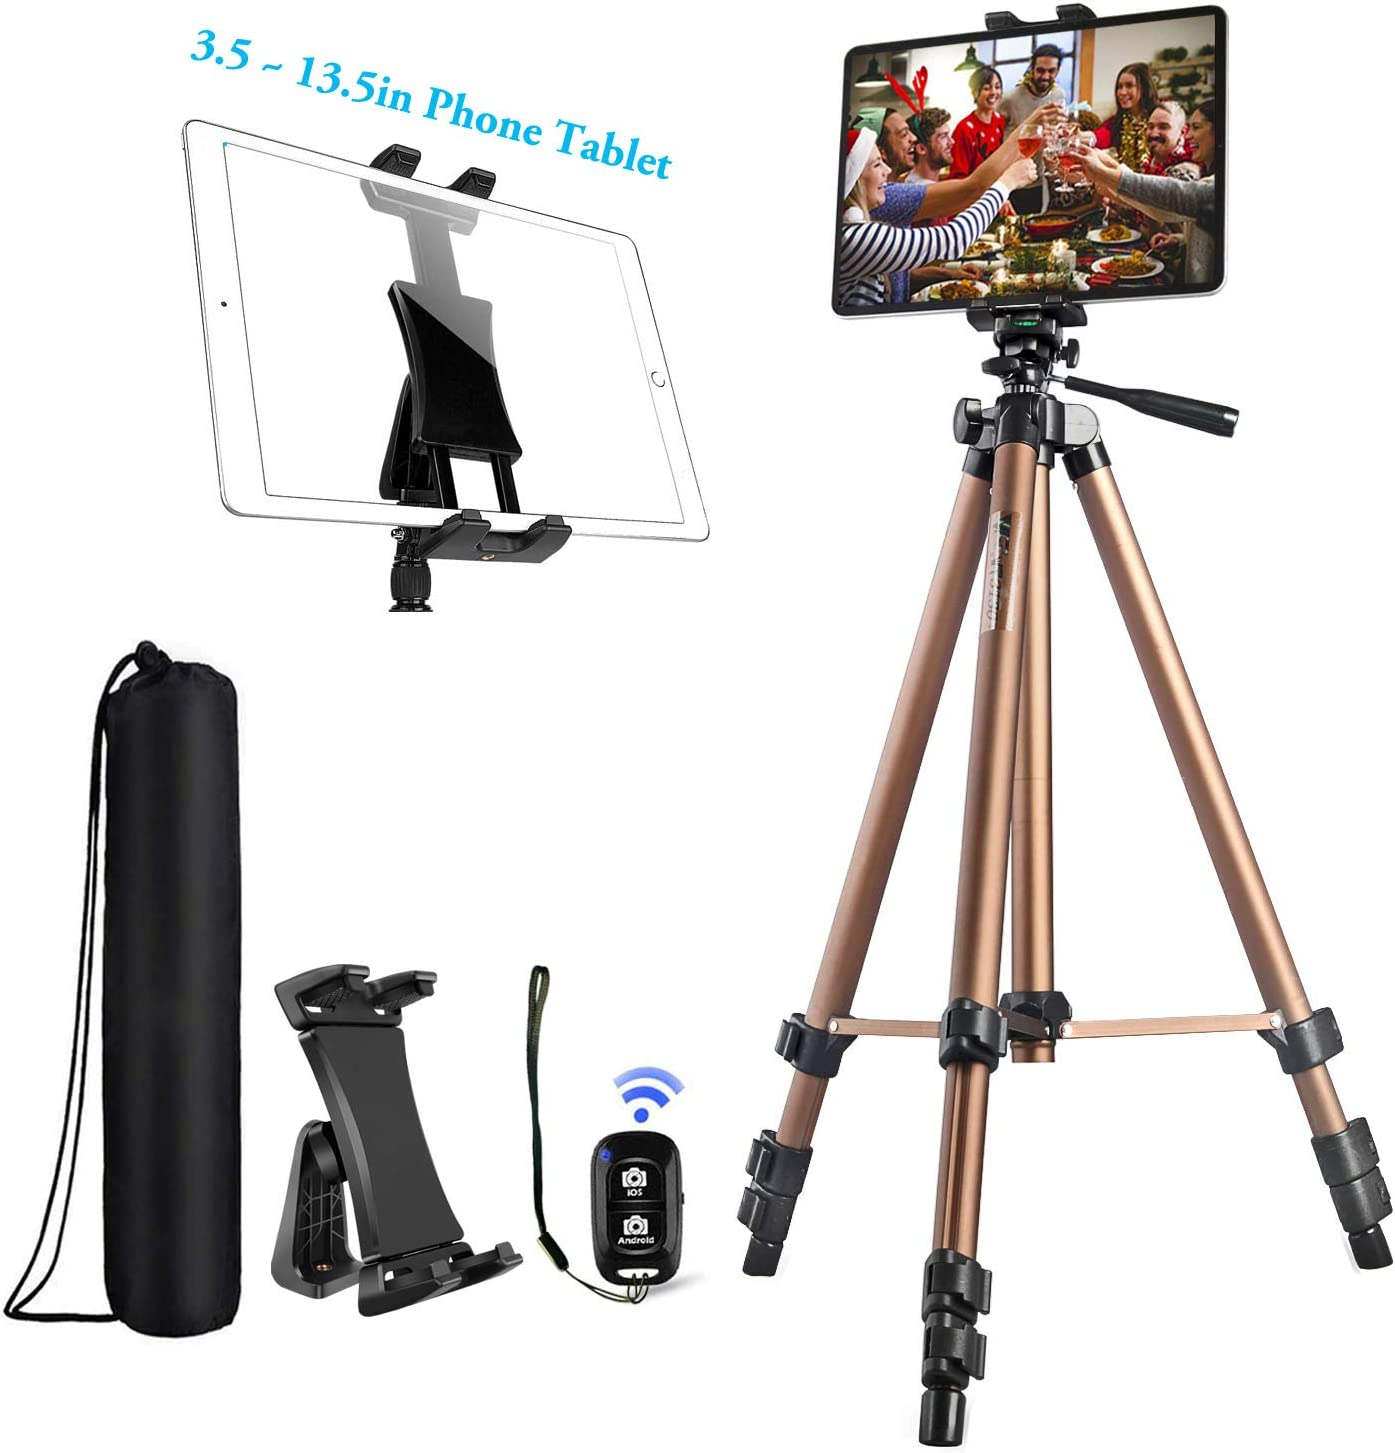 IPad Tripod Stand Universal Tablet Phone Mount Holder 51in Lightweight with Bluetooth Remote for iPad Pro 12.9 11 10.5,iPad Air Mini,Surface Tab,Galaxy Tab and 3.5 to 13.5in iPhone Tablet - Champagne